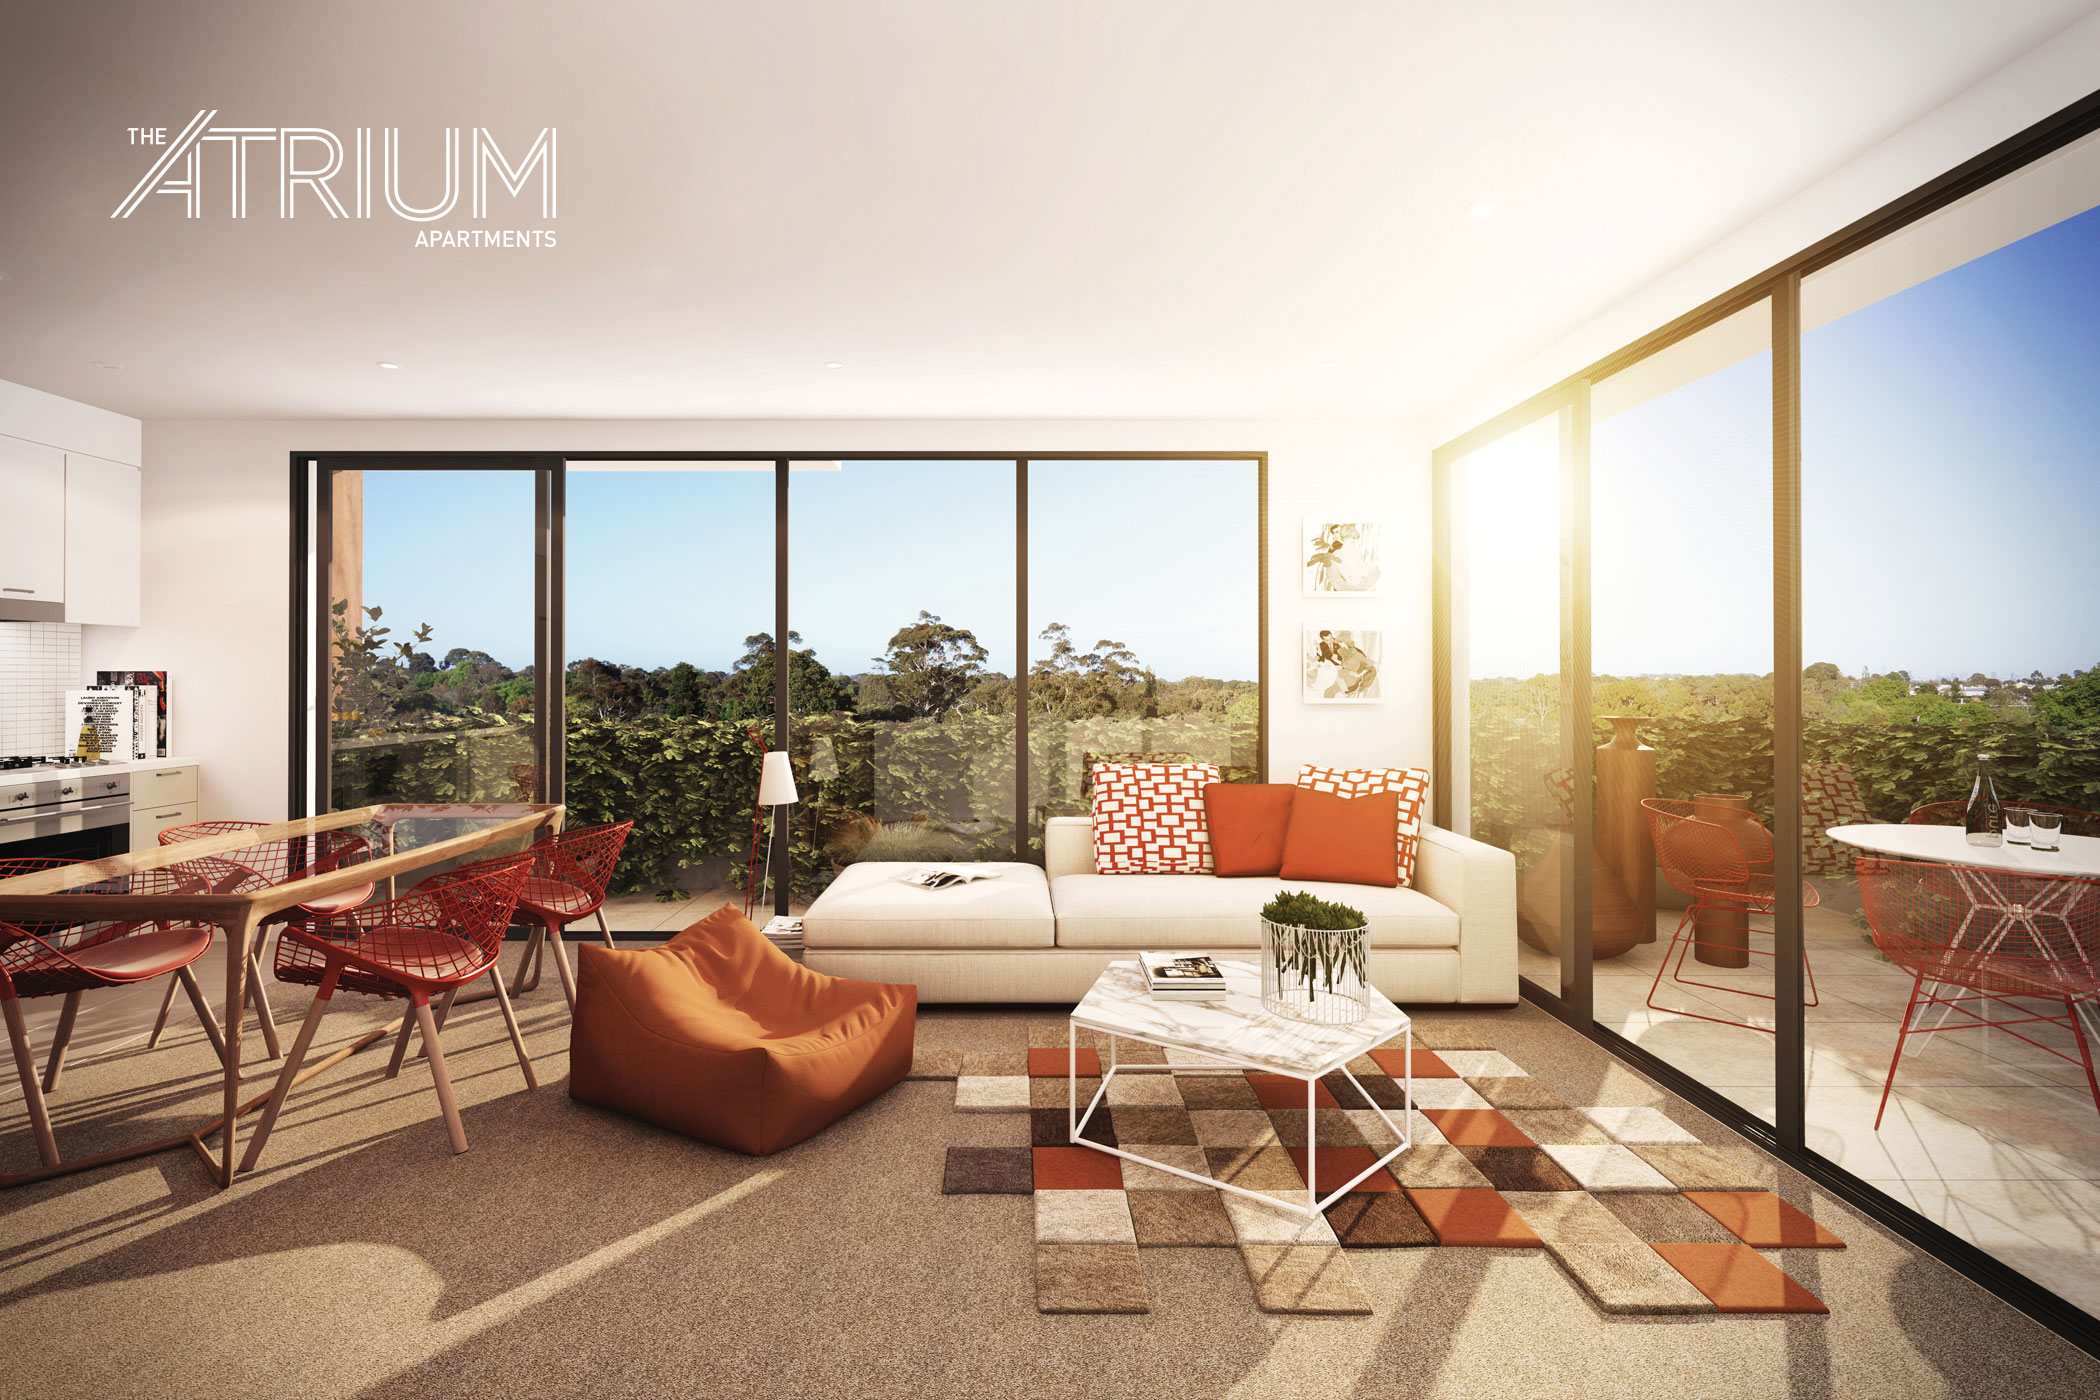 The Atrium Apartments